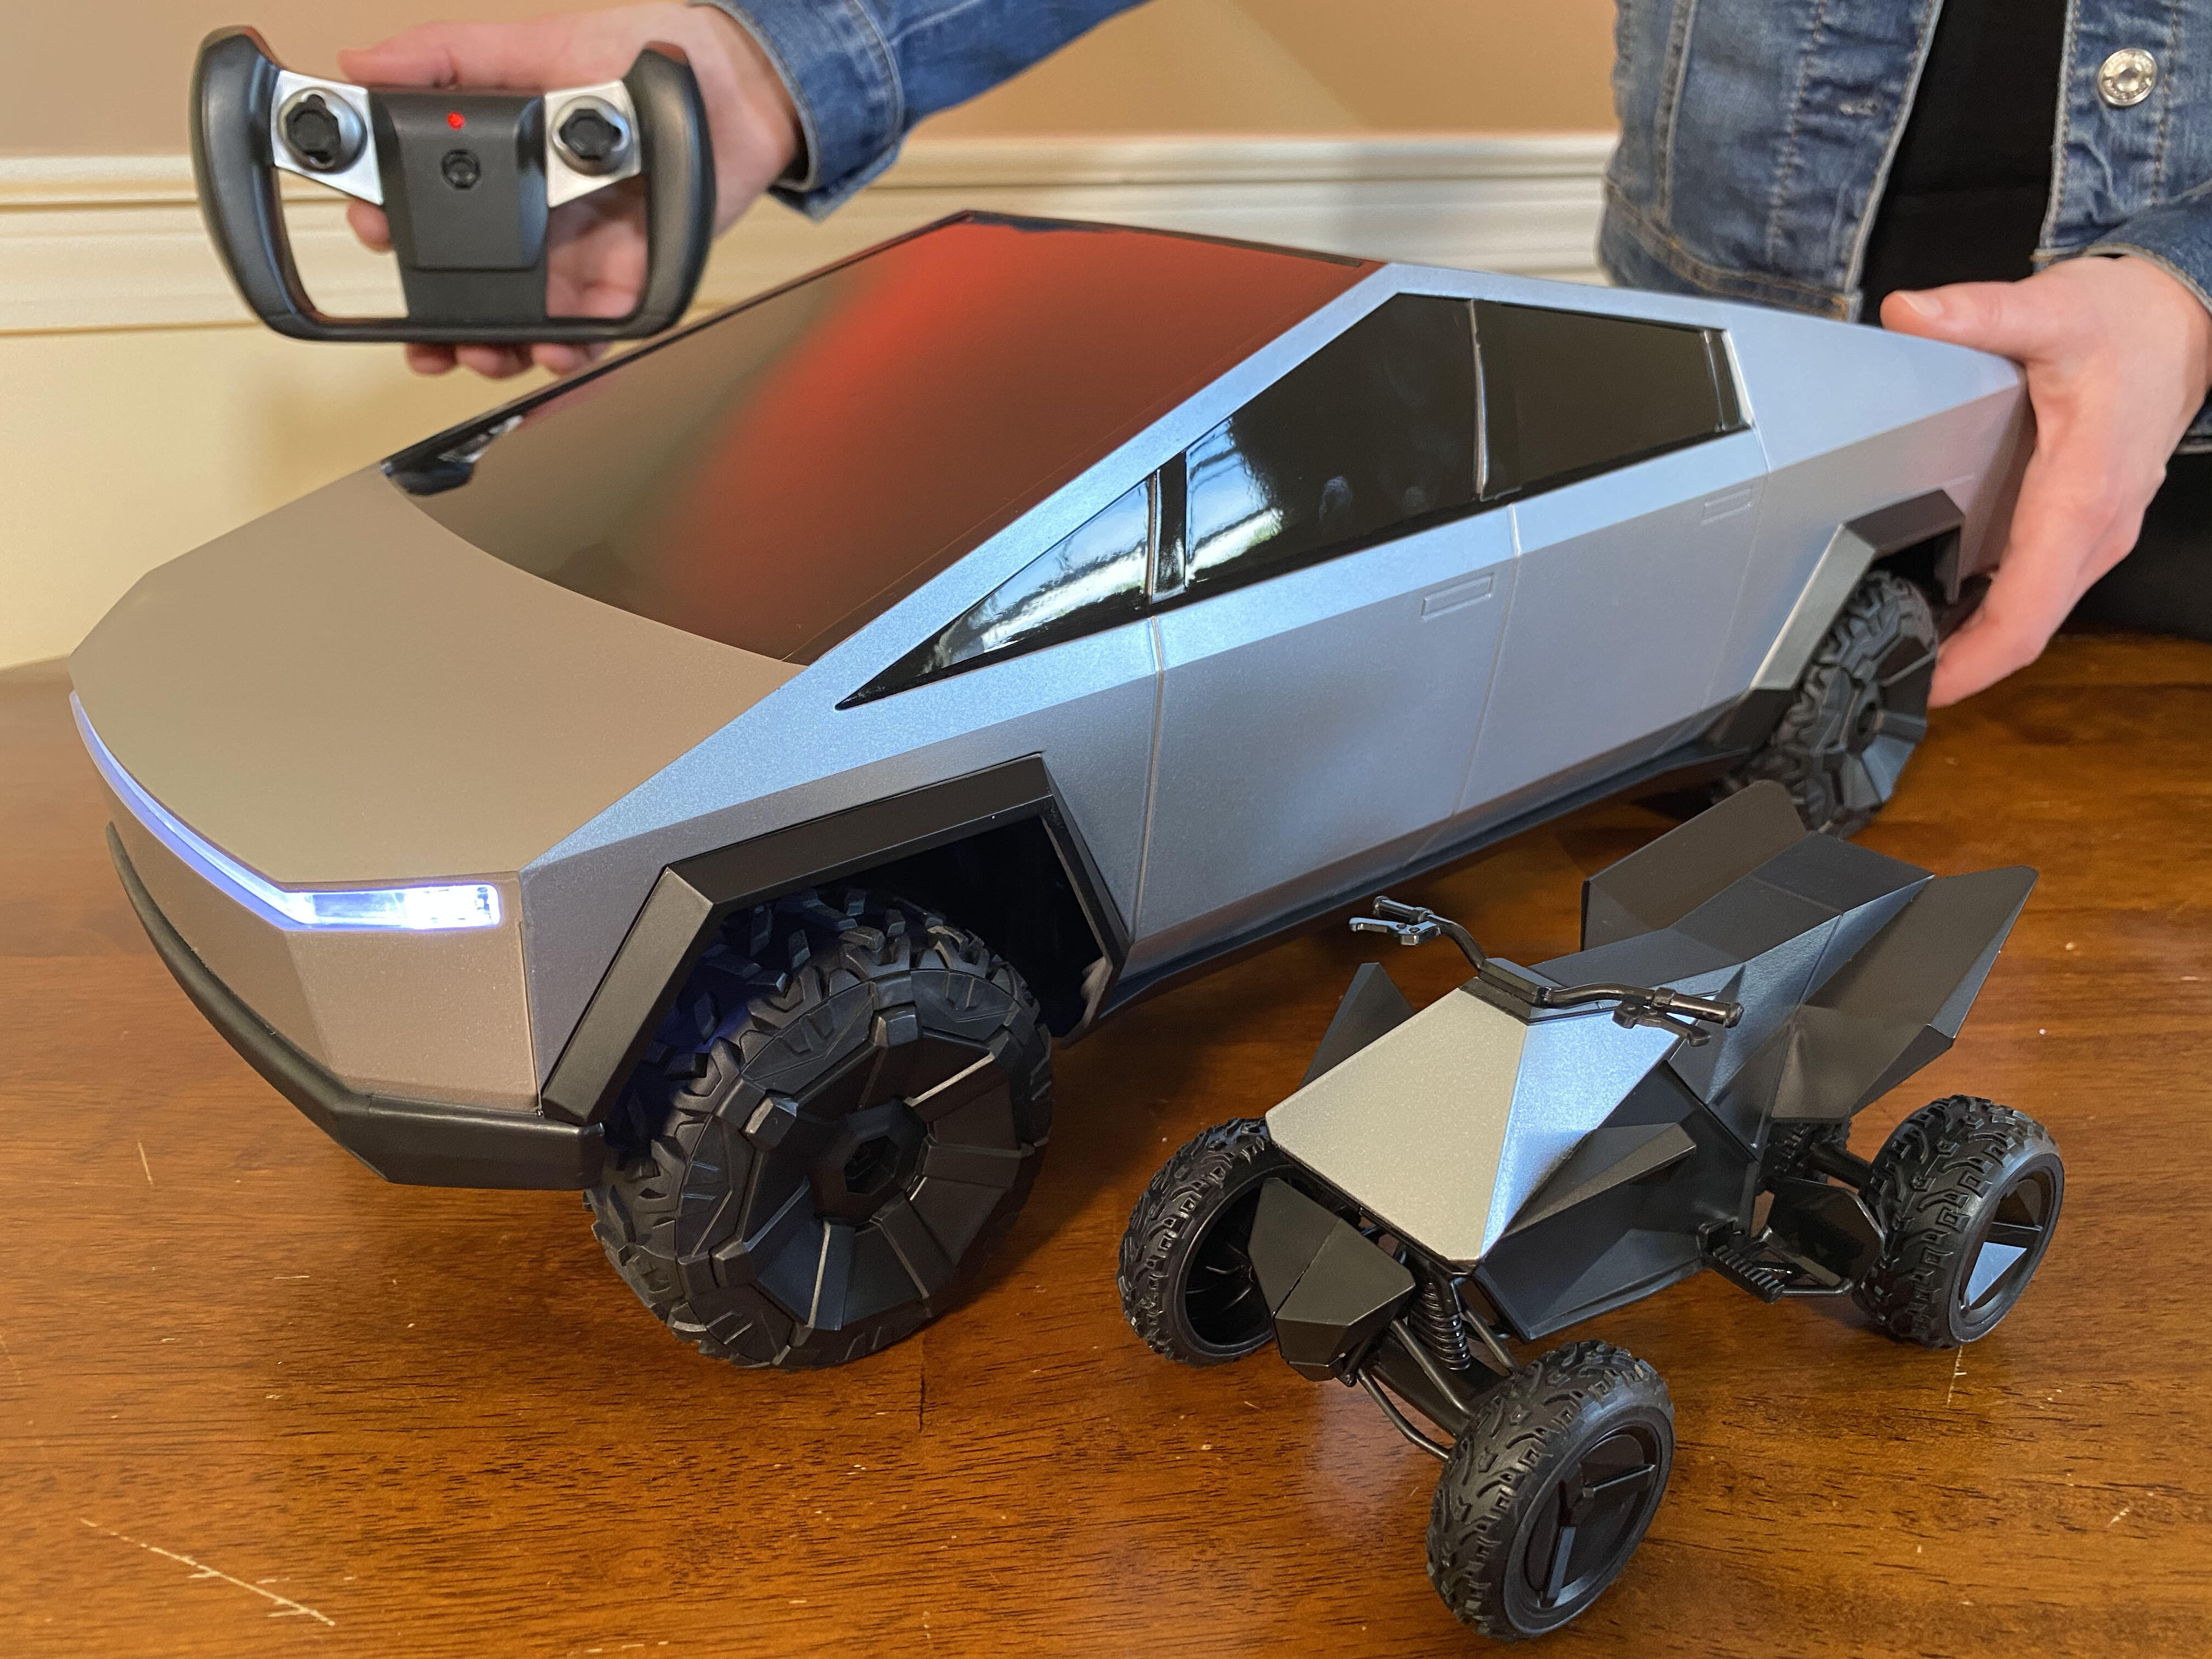 <p>Mattel's new R/C Cybertruck toy goes on sale this week for $100. And it includes the Cyberquad ATV.</p>